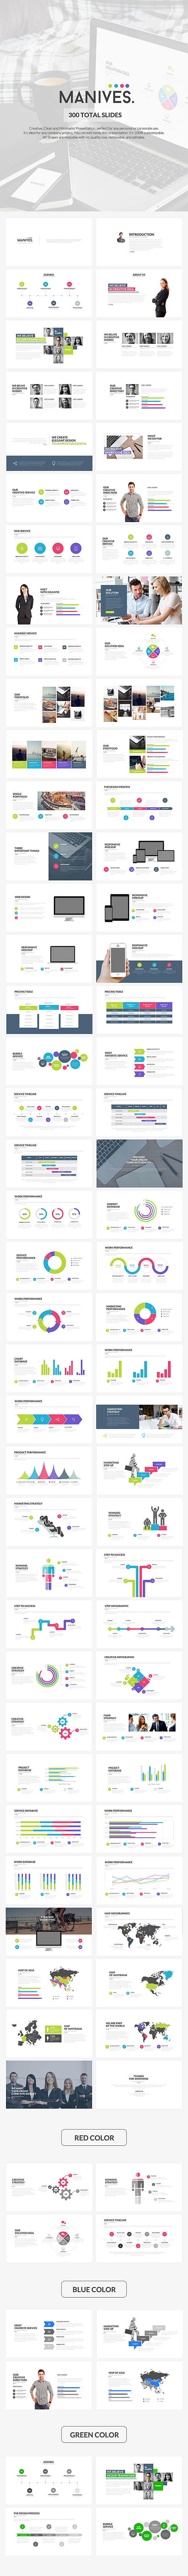 GraphicRiver Manives Powerpoint Template 10961294